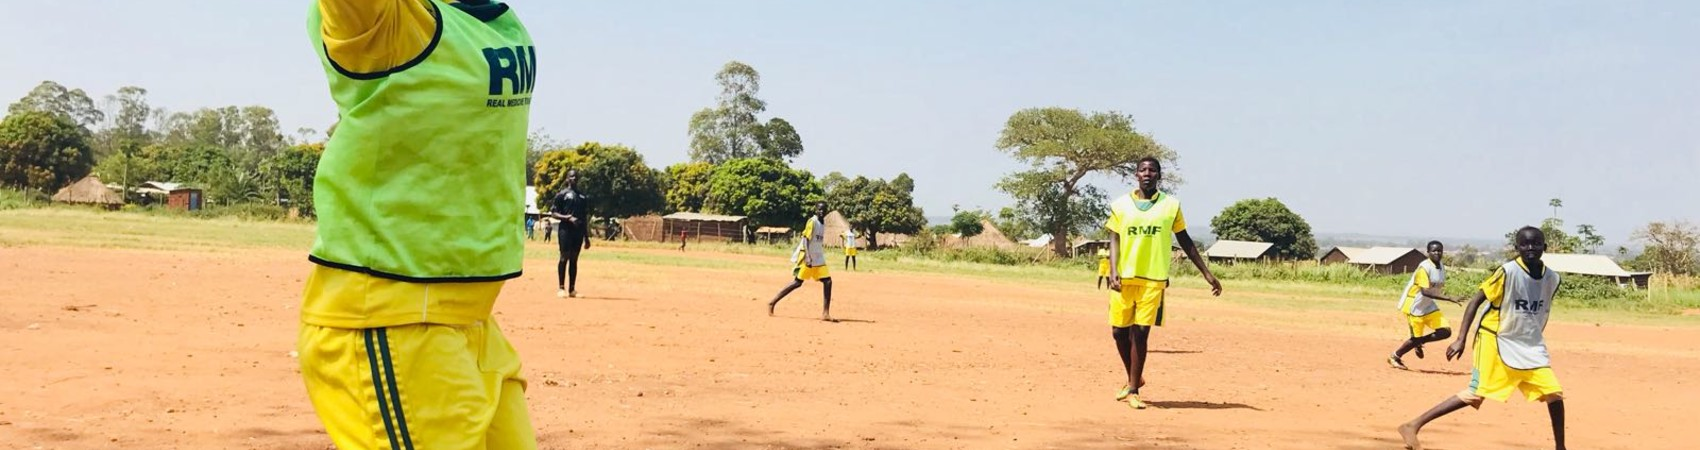 Changing the game in Uganda